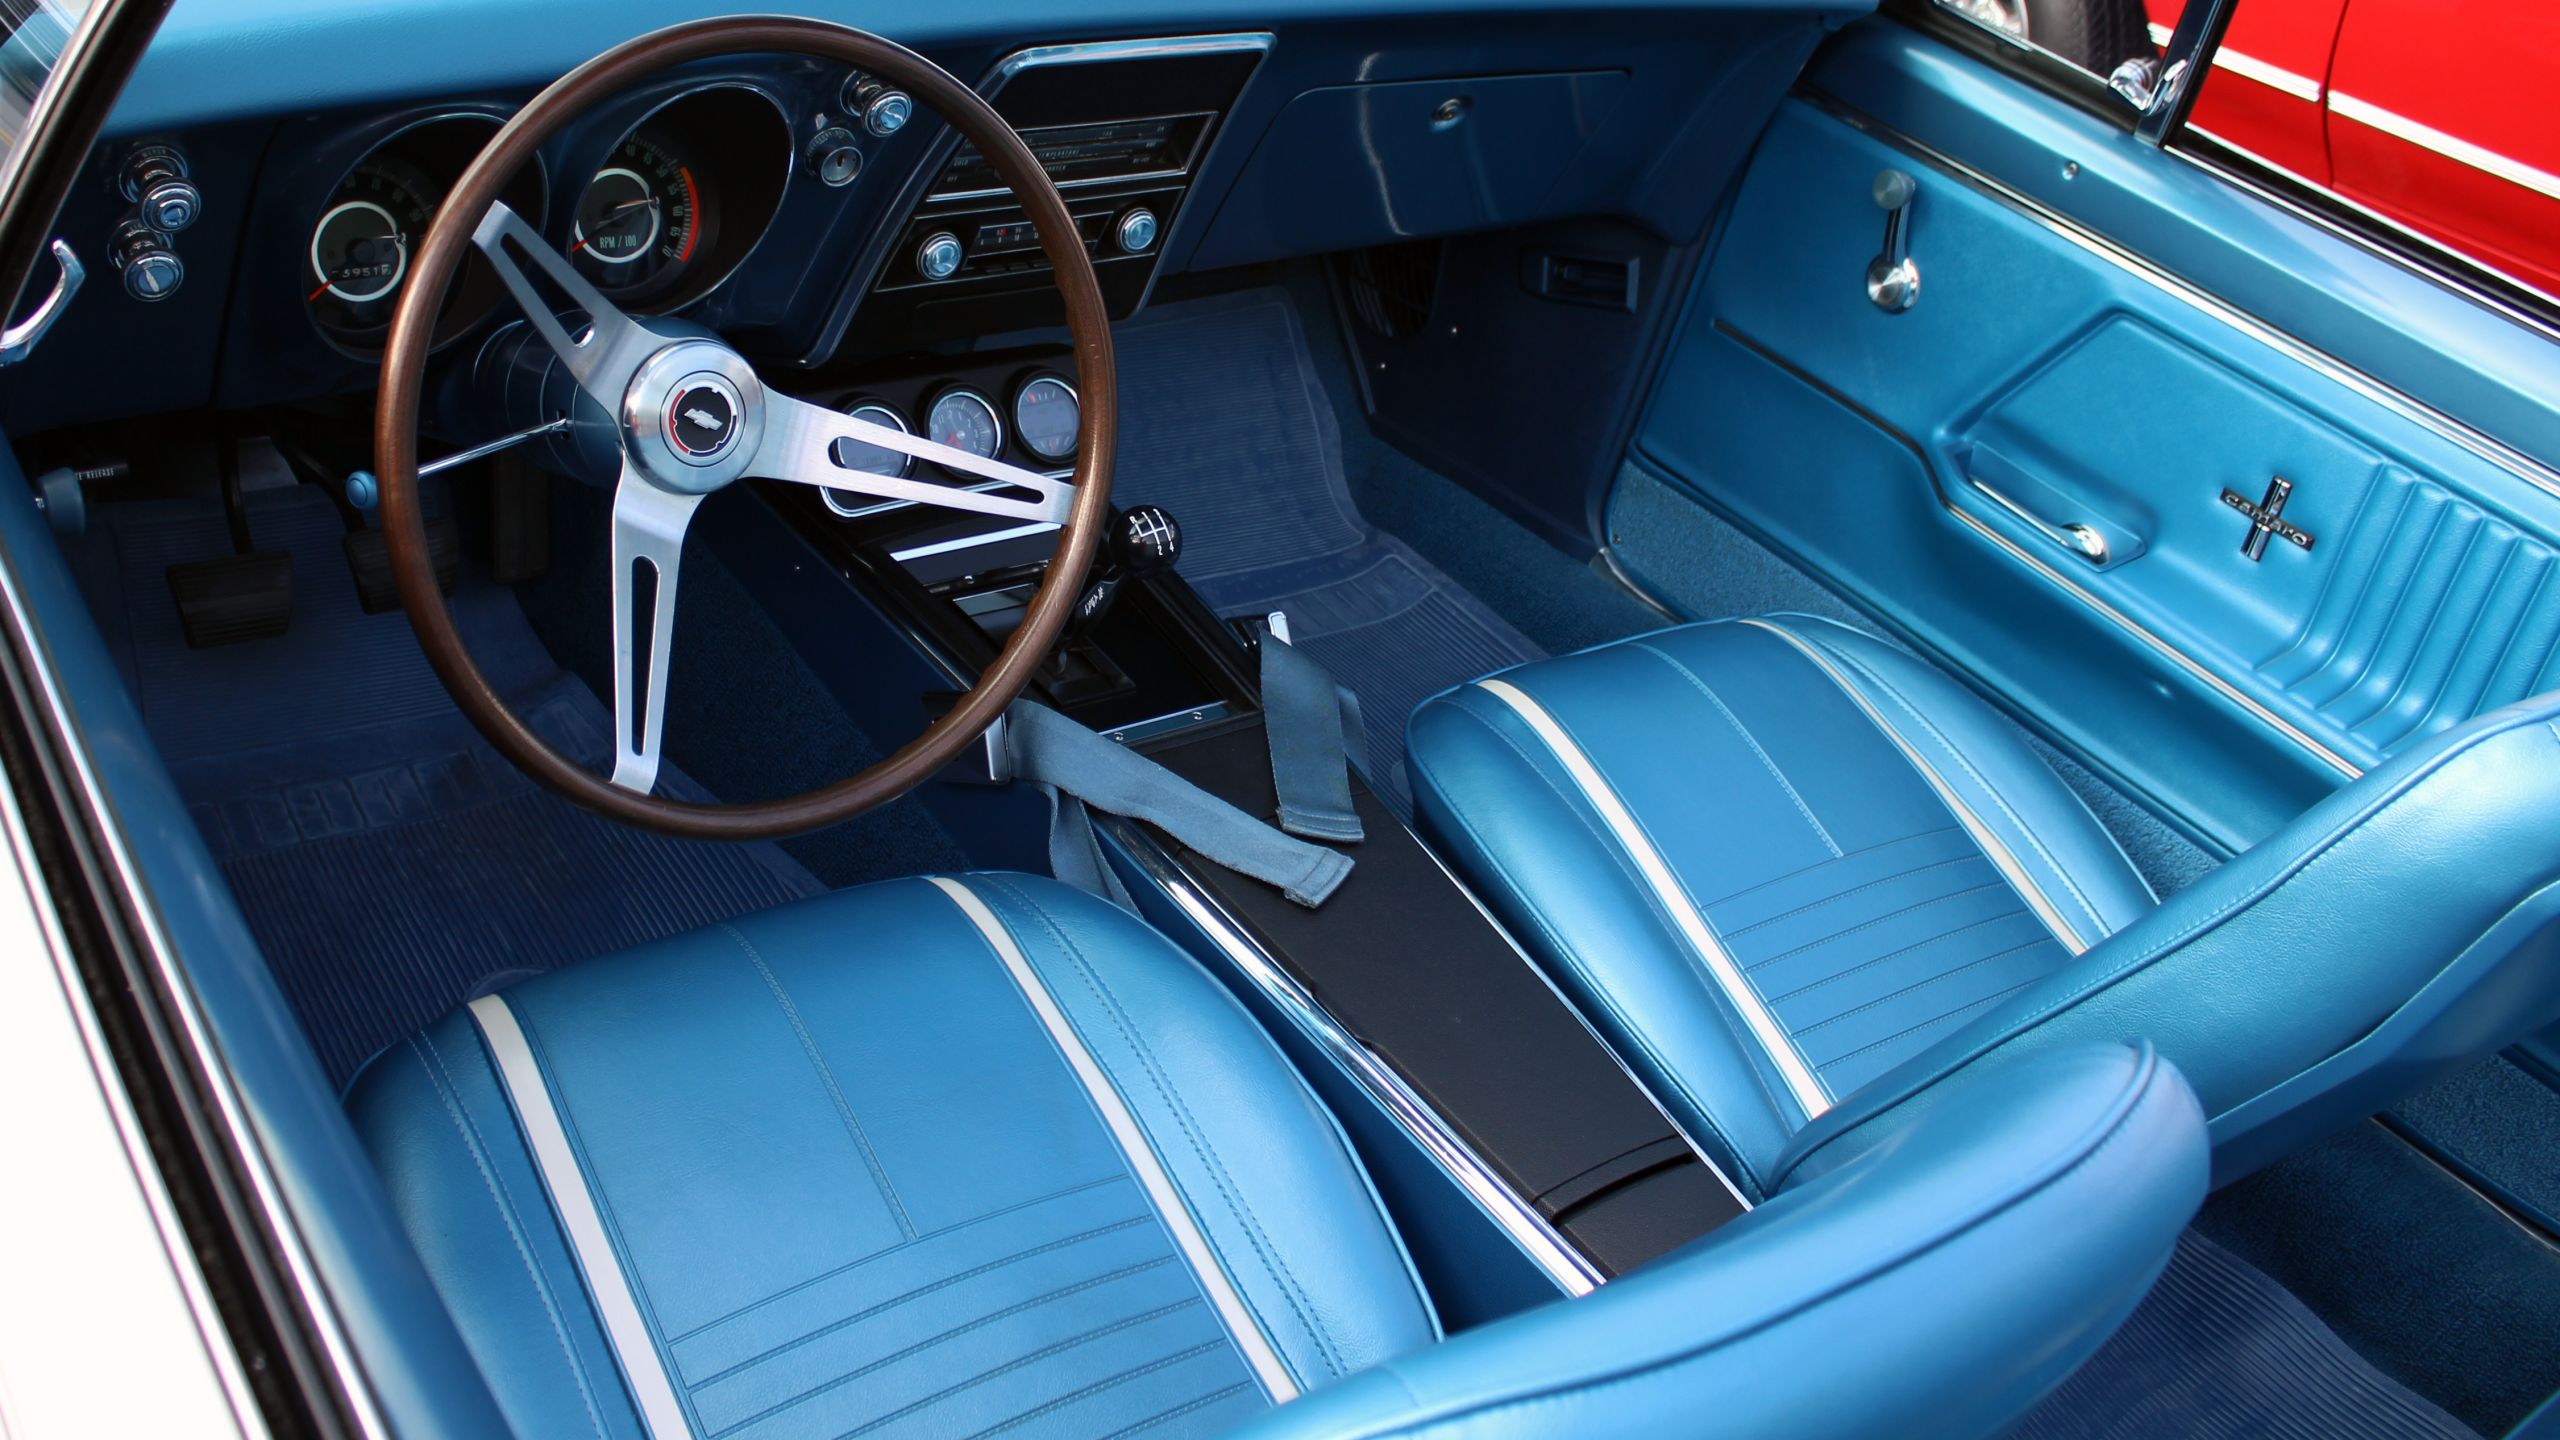 Chevrolet Camaro 1966 1969 Model Overview Muscle Gta Chevy Ss Blue Interior